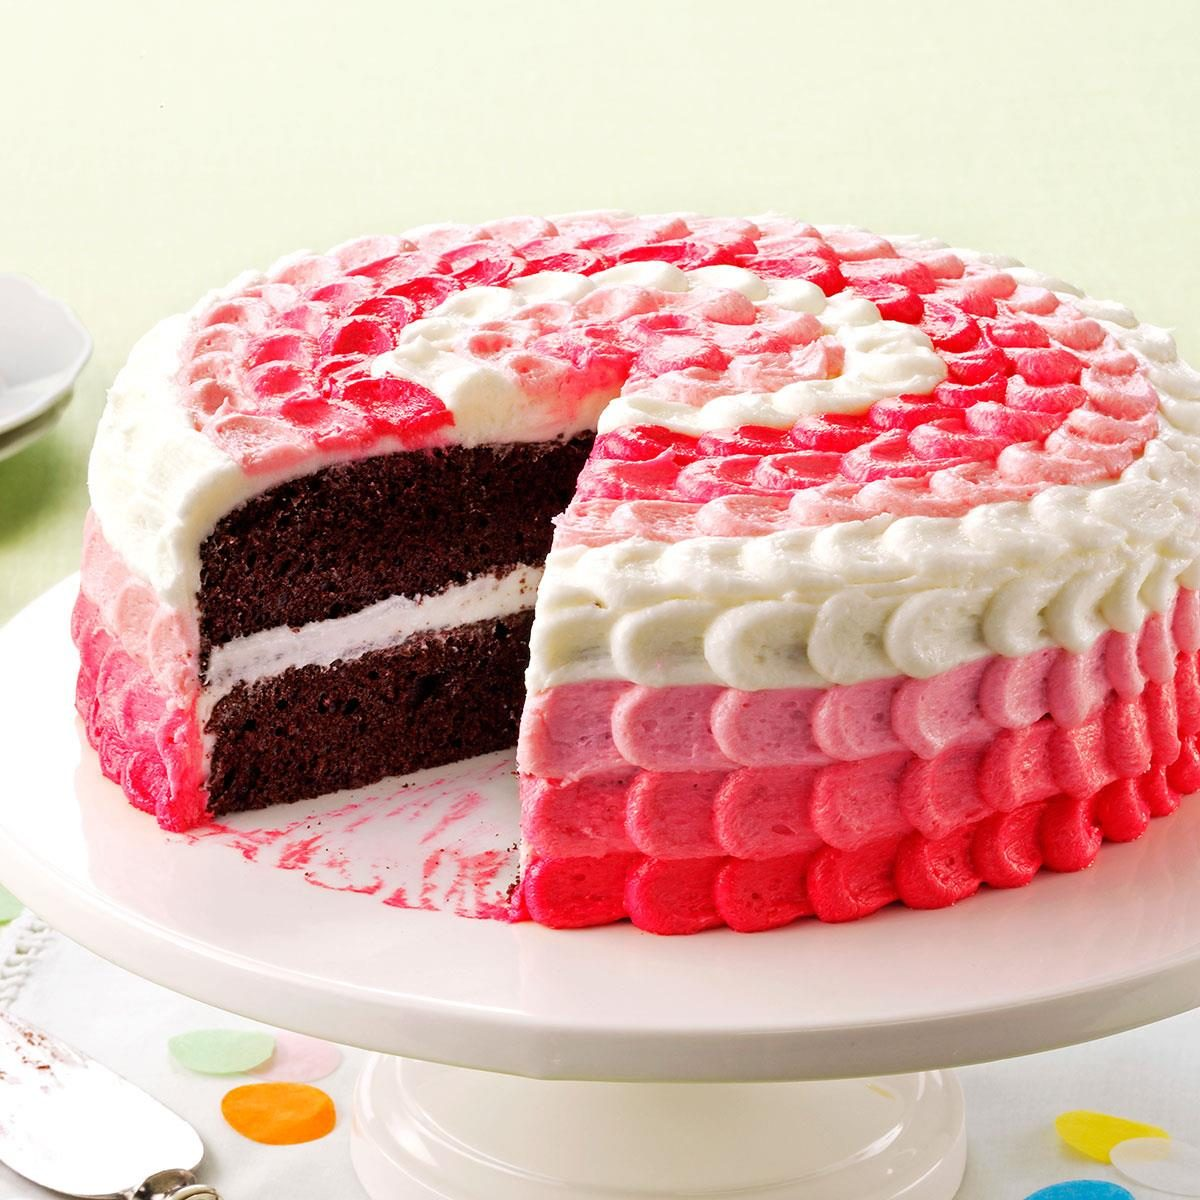 Cake Decoration Cream Recipe : how to make creamy icing for cake